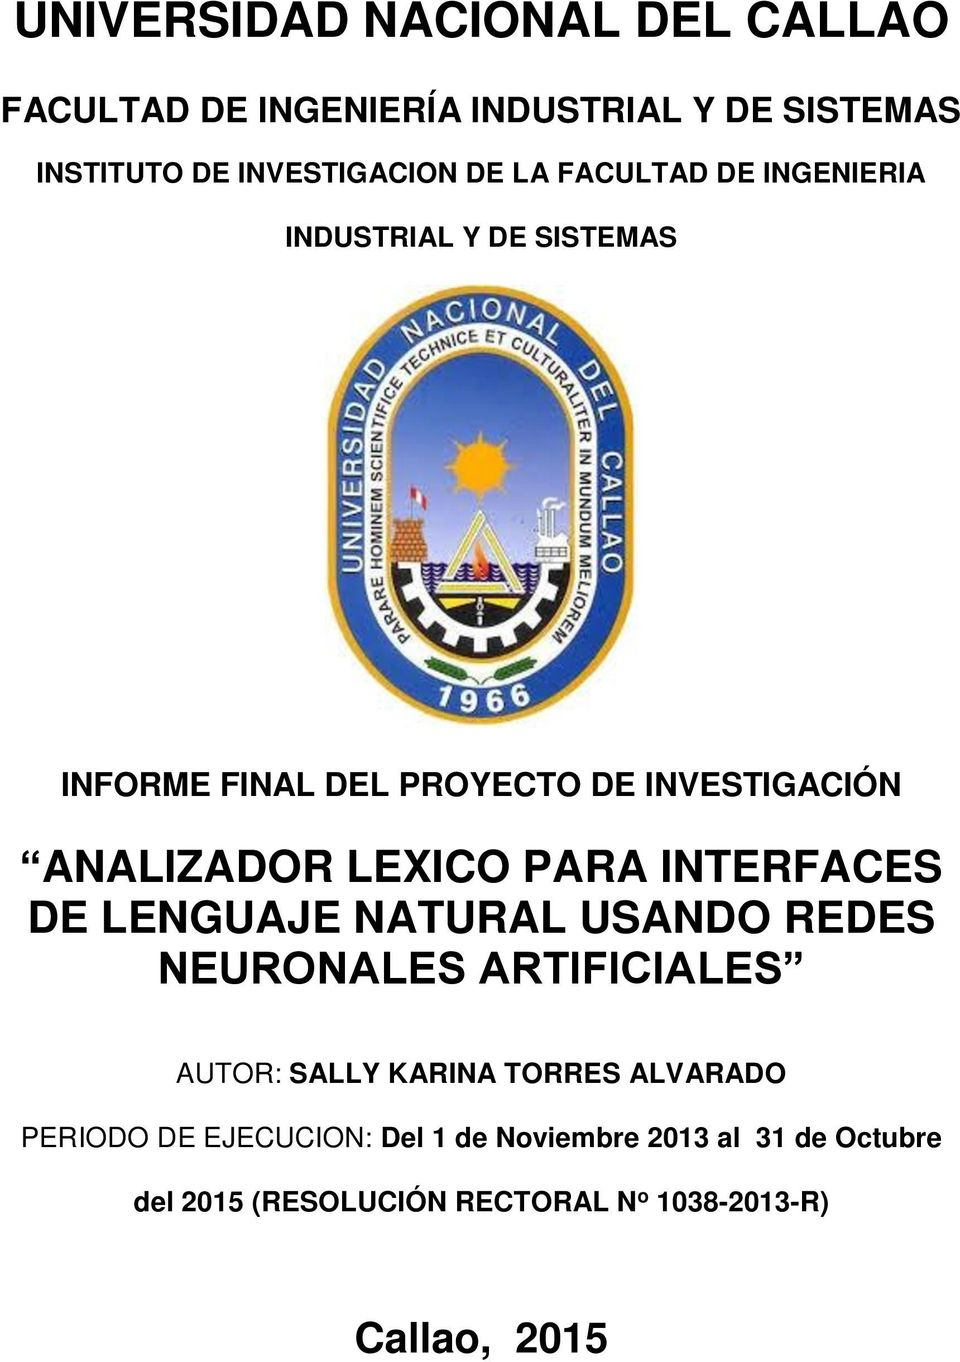 PARA INTERFACES DE LENGUAJE NATURAL USANDO REDES NEURONALES ARTIFICIALES AUTOR: SALLY KARINA TORRES ALVARADO